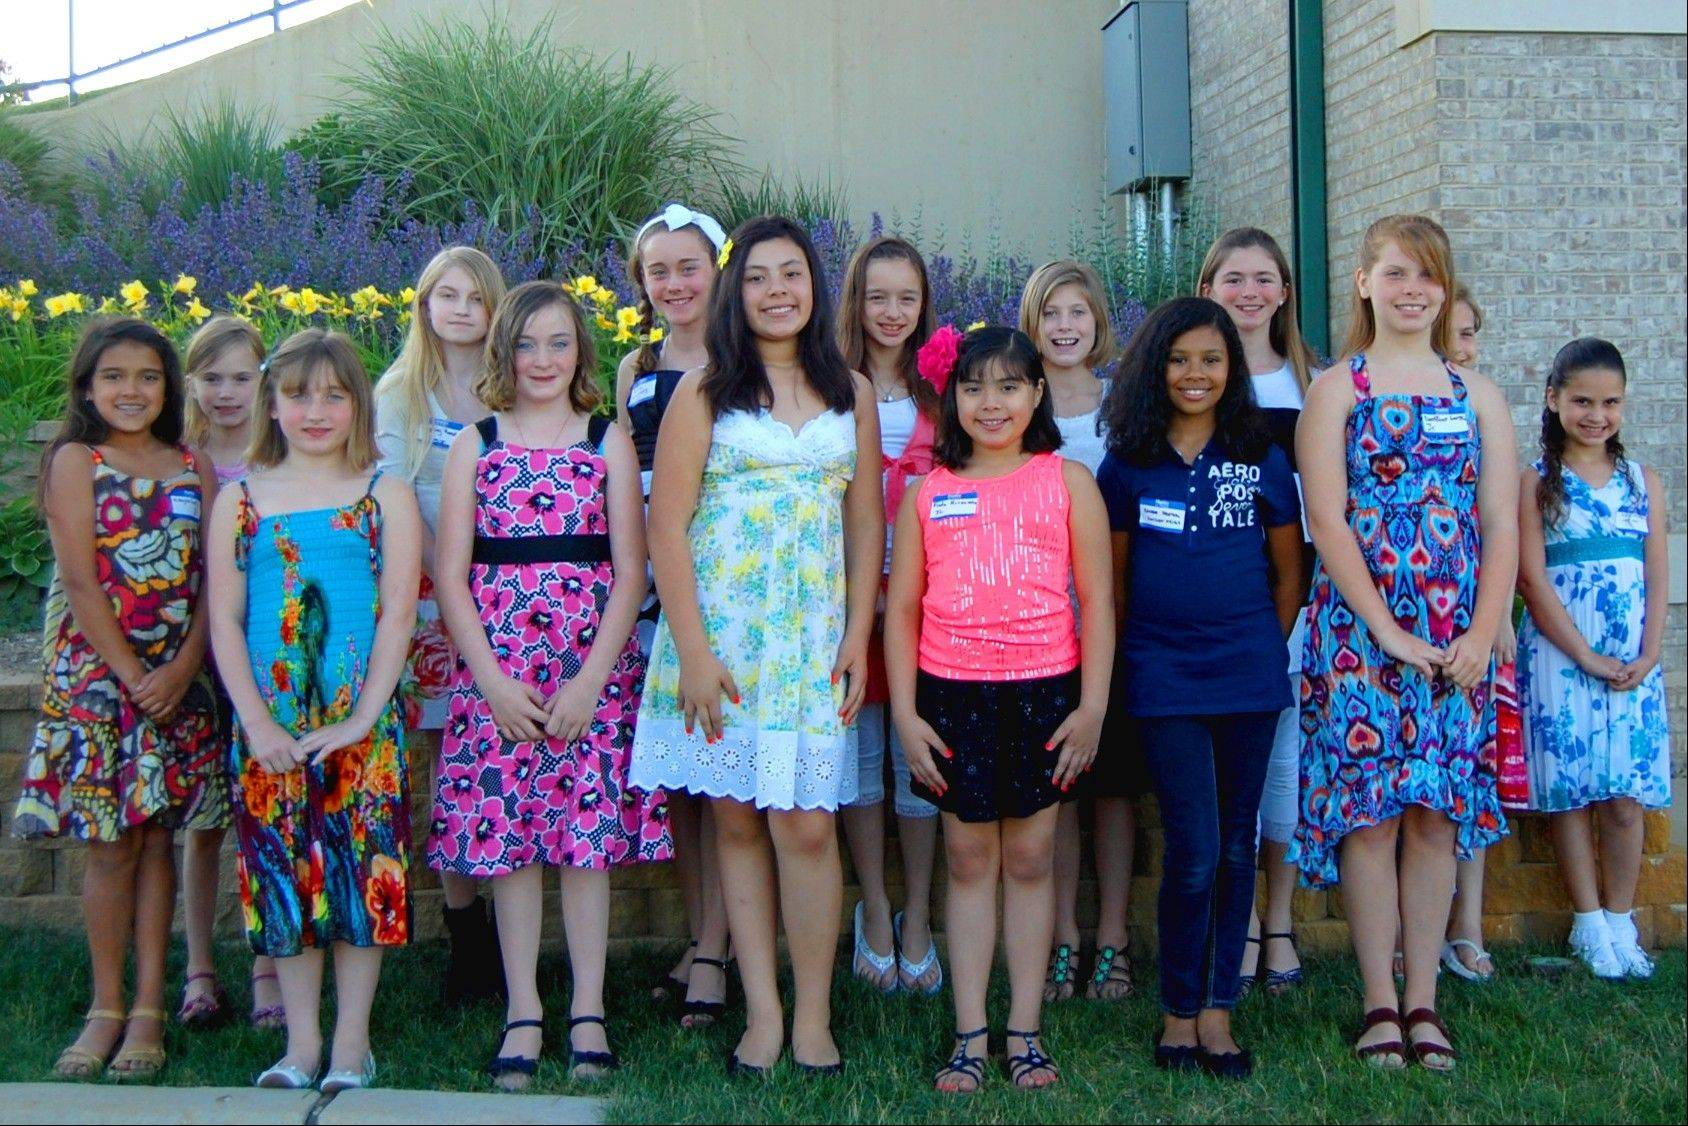 The contestants in the Junior Miss Grant Township 2012 Pageant: Mikayla Earl, Desiree Frank, Karissa Fischer, Kathia Hernandez, Frida Hernandez, Chloe Hirth, Destinee Longtin, Laela Manlick, Sydney Rondle, Gabriela Schoenberg, Taylor Schweiss, Lyrik Stay, Samantha Thibault, Genevieve Torrey and Kayla Weigand; not pictured: Requel Young.